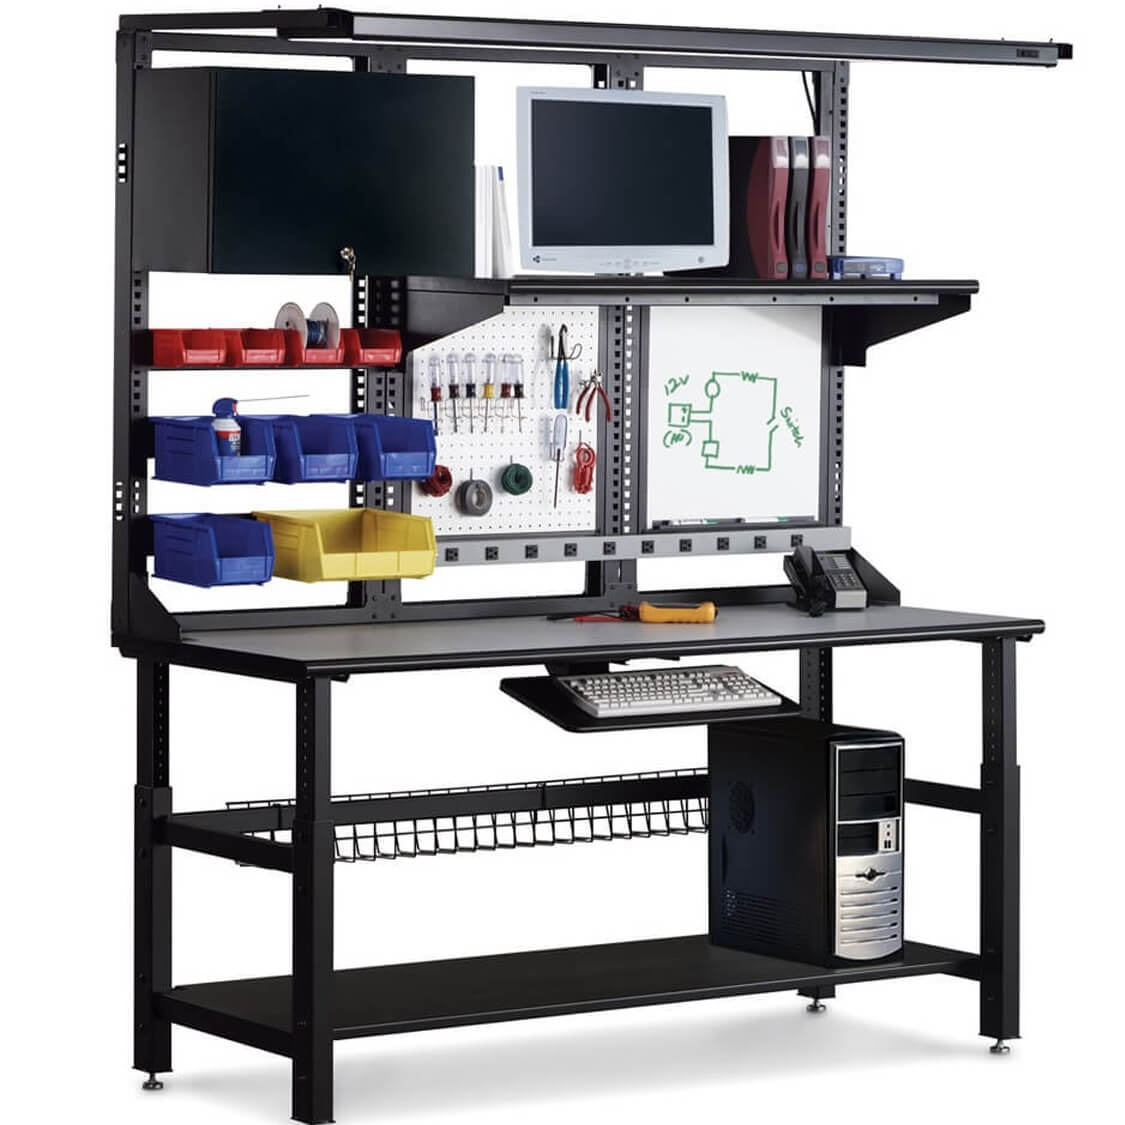 mobile-worktable-with-tools.jpg